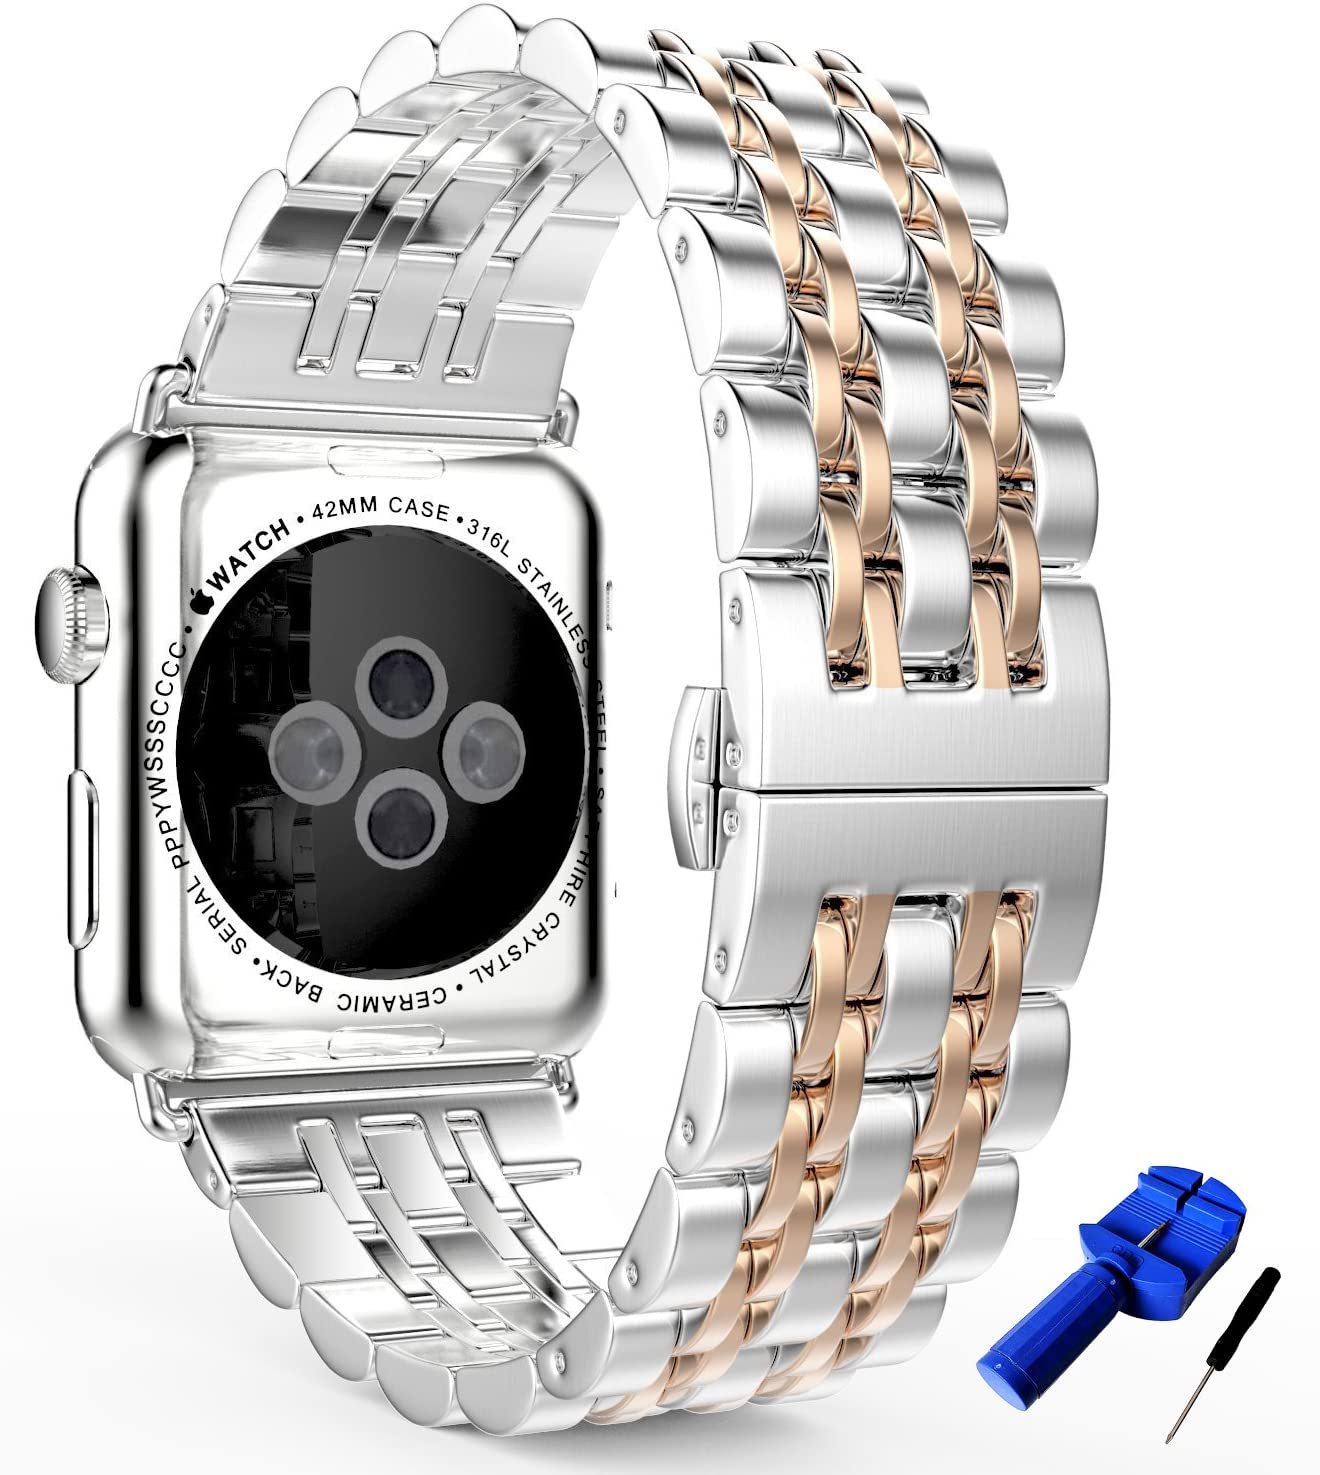 HUANLONG Compatible with Apple Watch Band, Solid Stainless Steel Metal Replacement Watchband Bracelet with Compatible with iWatch Series 1/2/3/4/5(LS 38mm Silver/Rosegold)